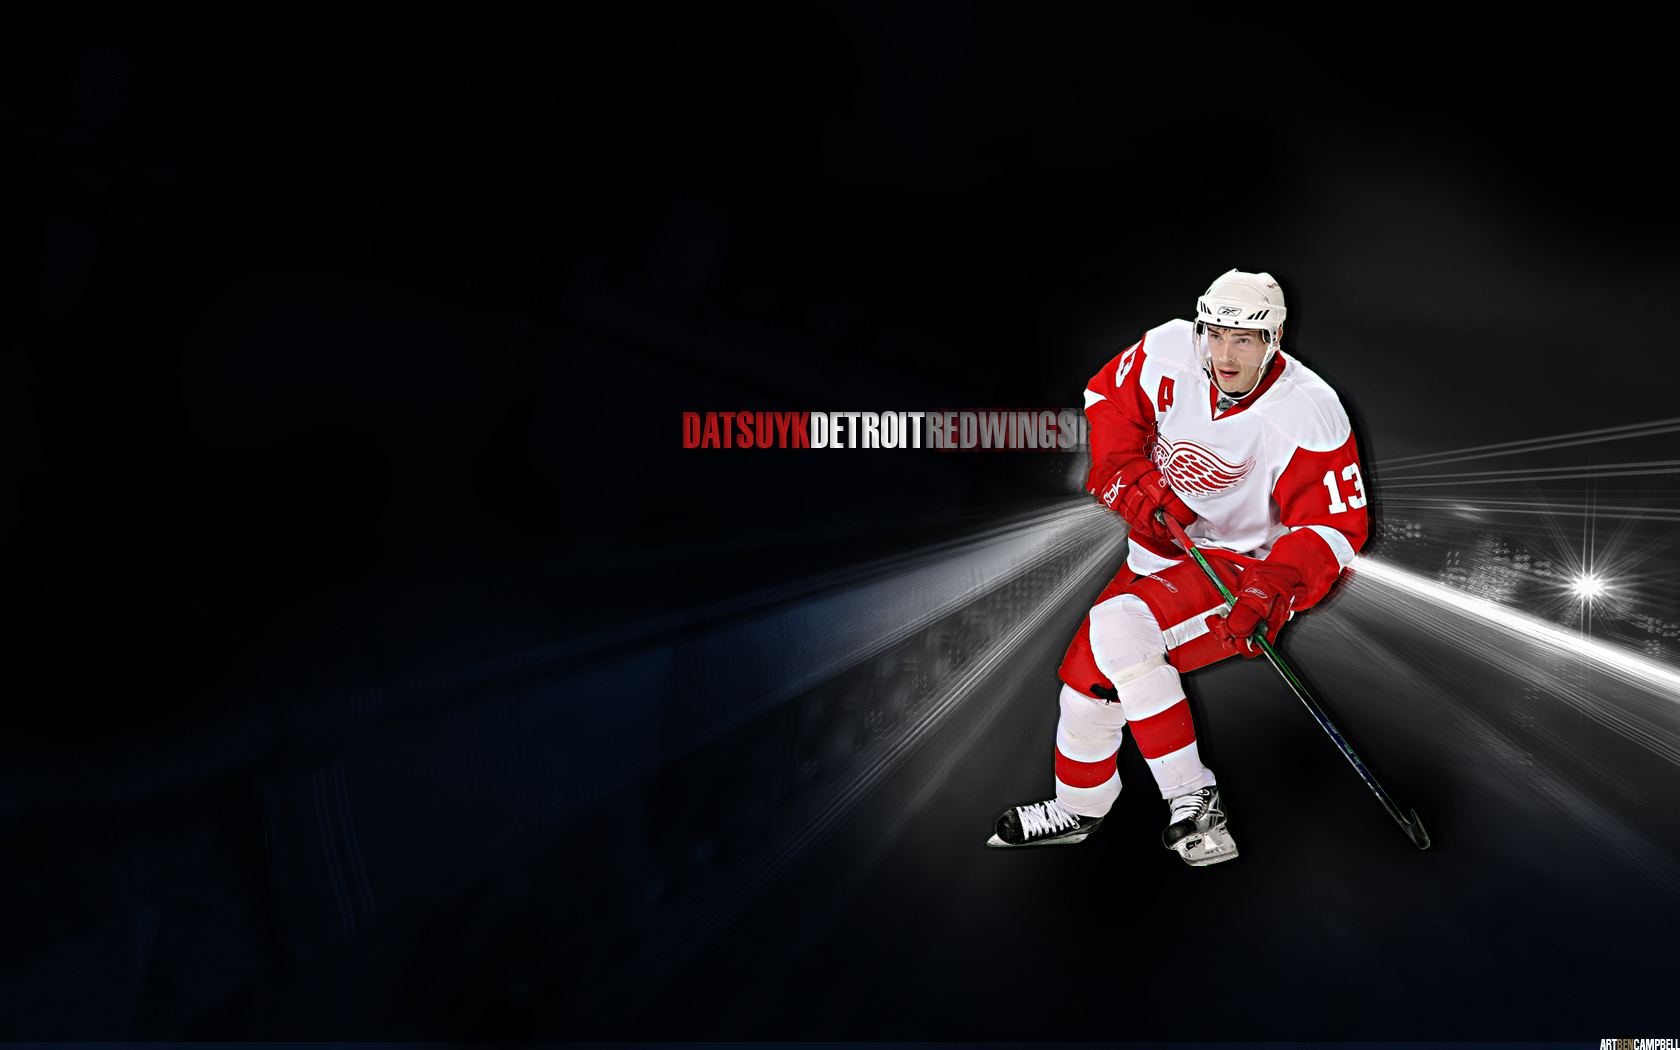 Detroit Red Wings Wallpaper Android Wengerluggagesave